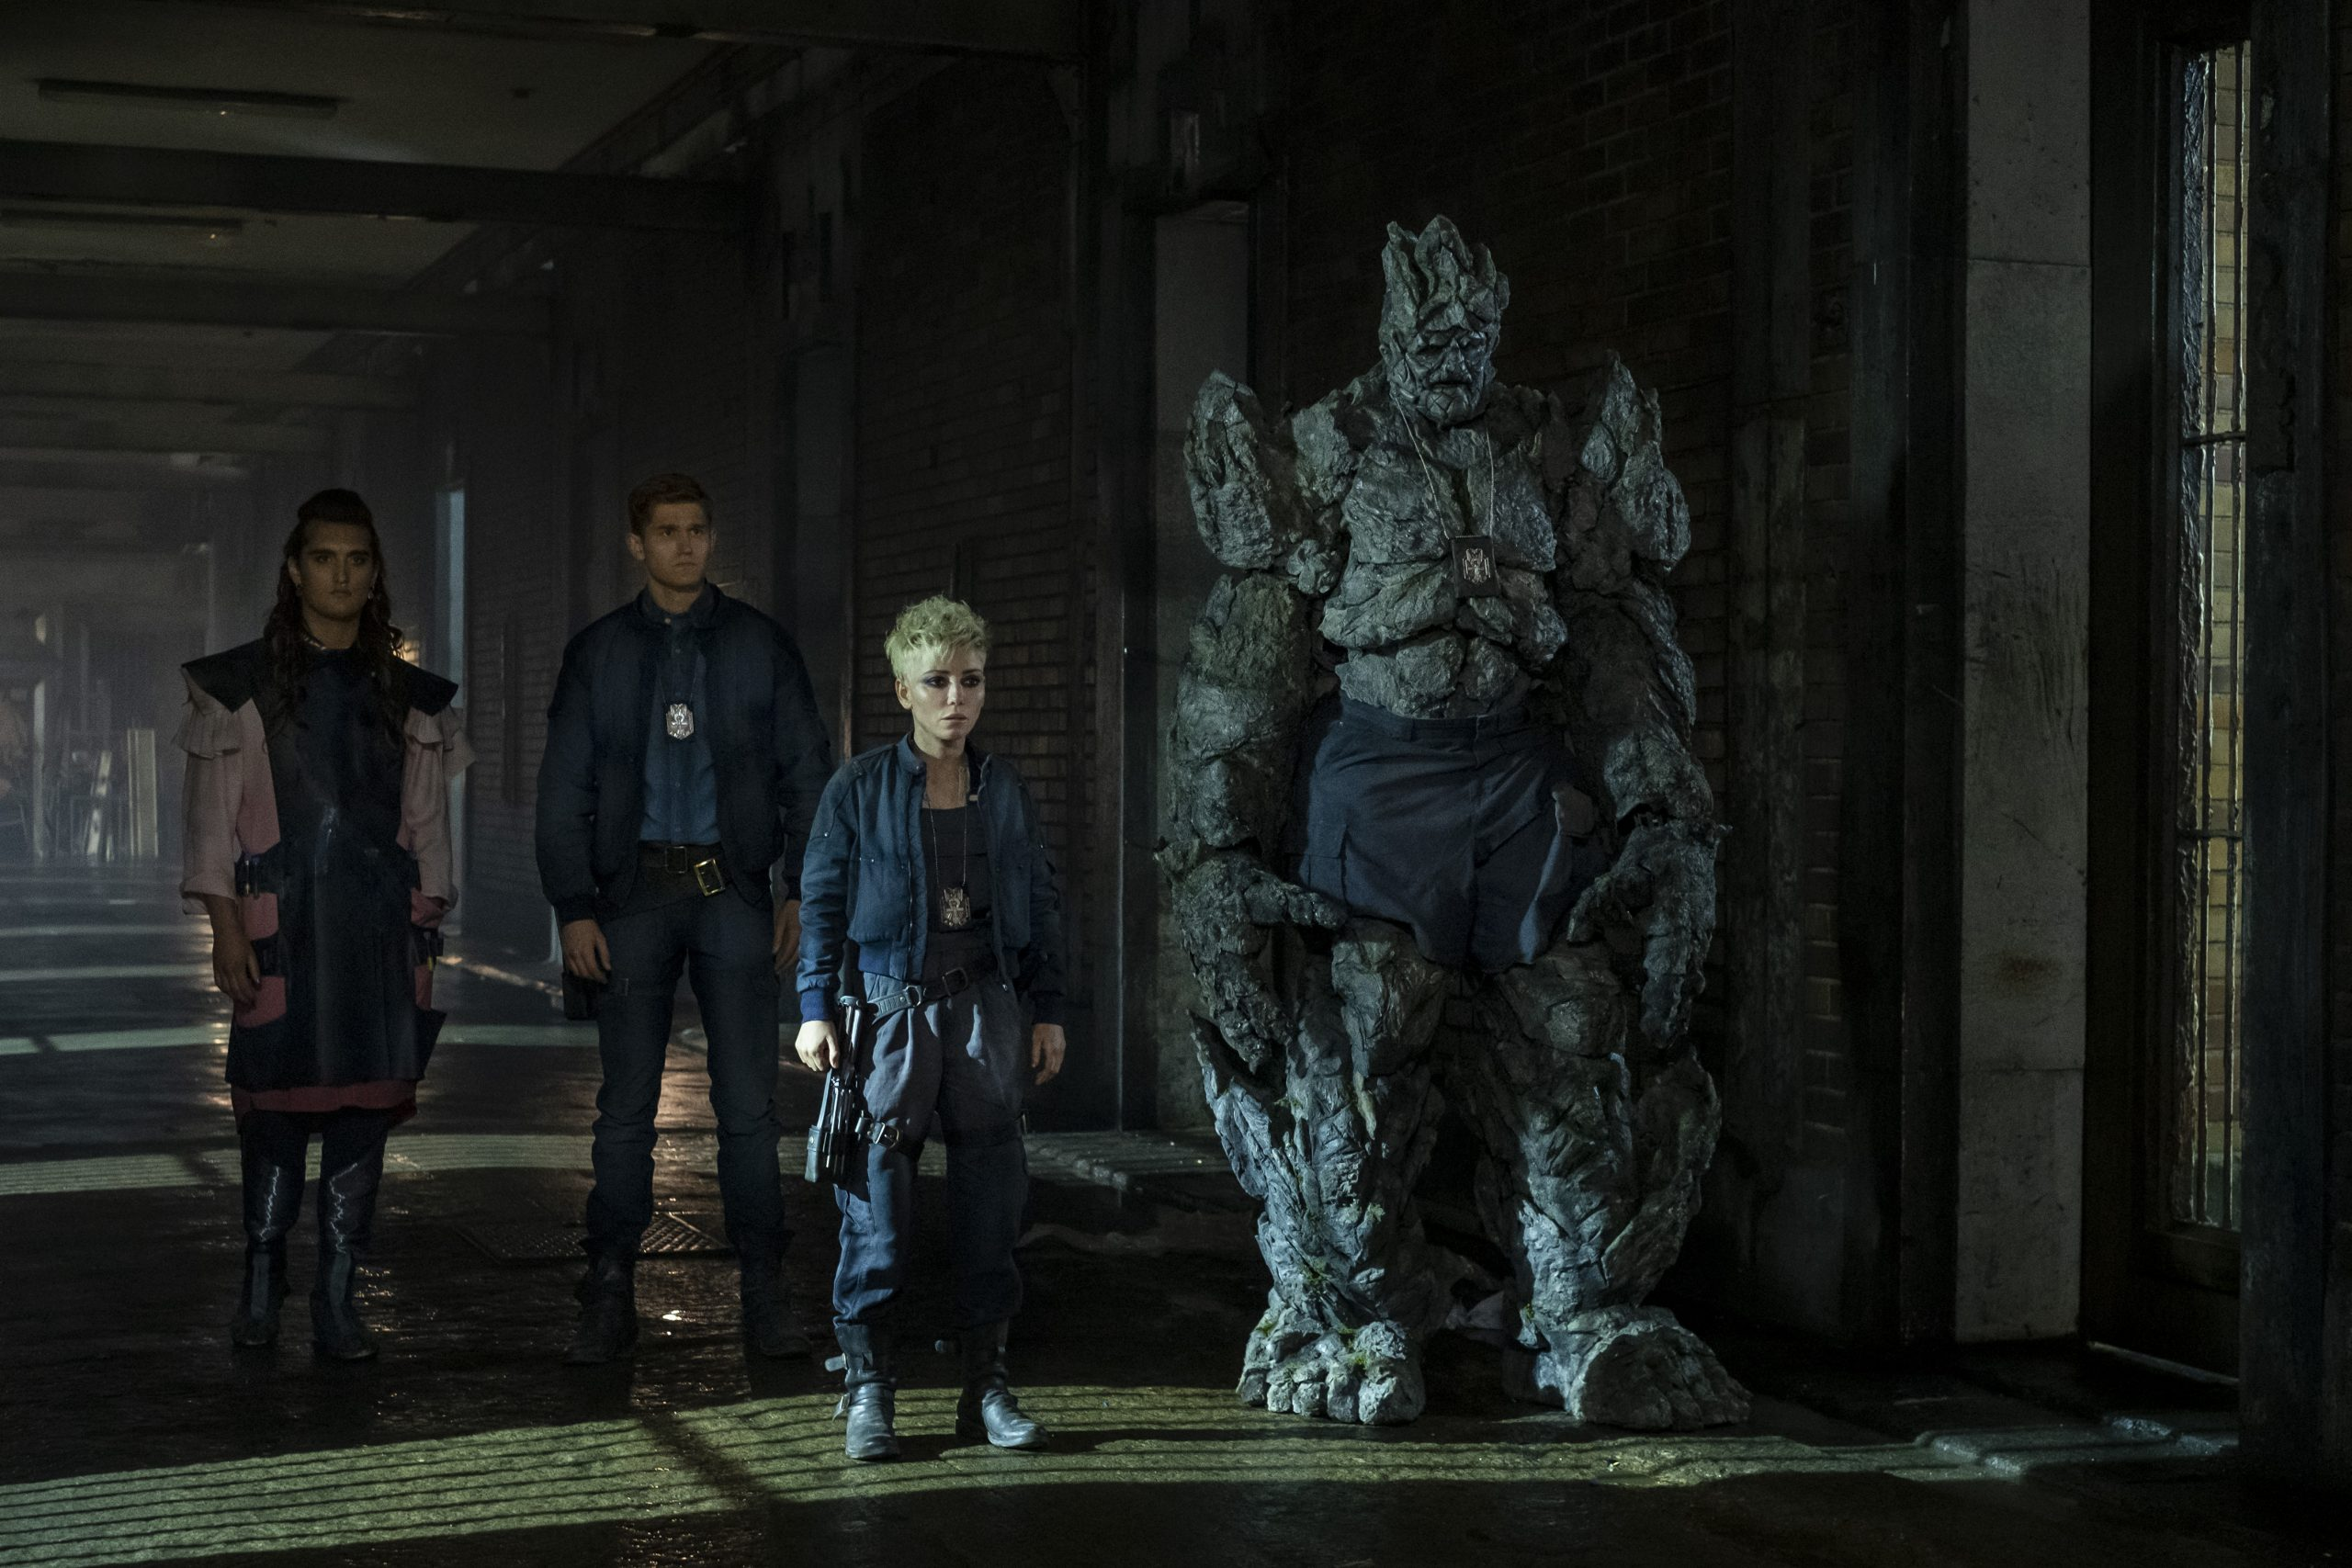 'The Watch' episode 1 review: 'A Near Vimes Experience'